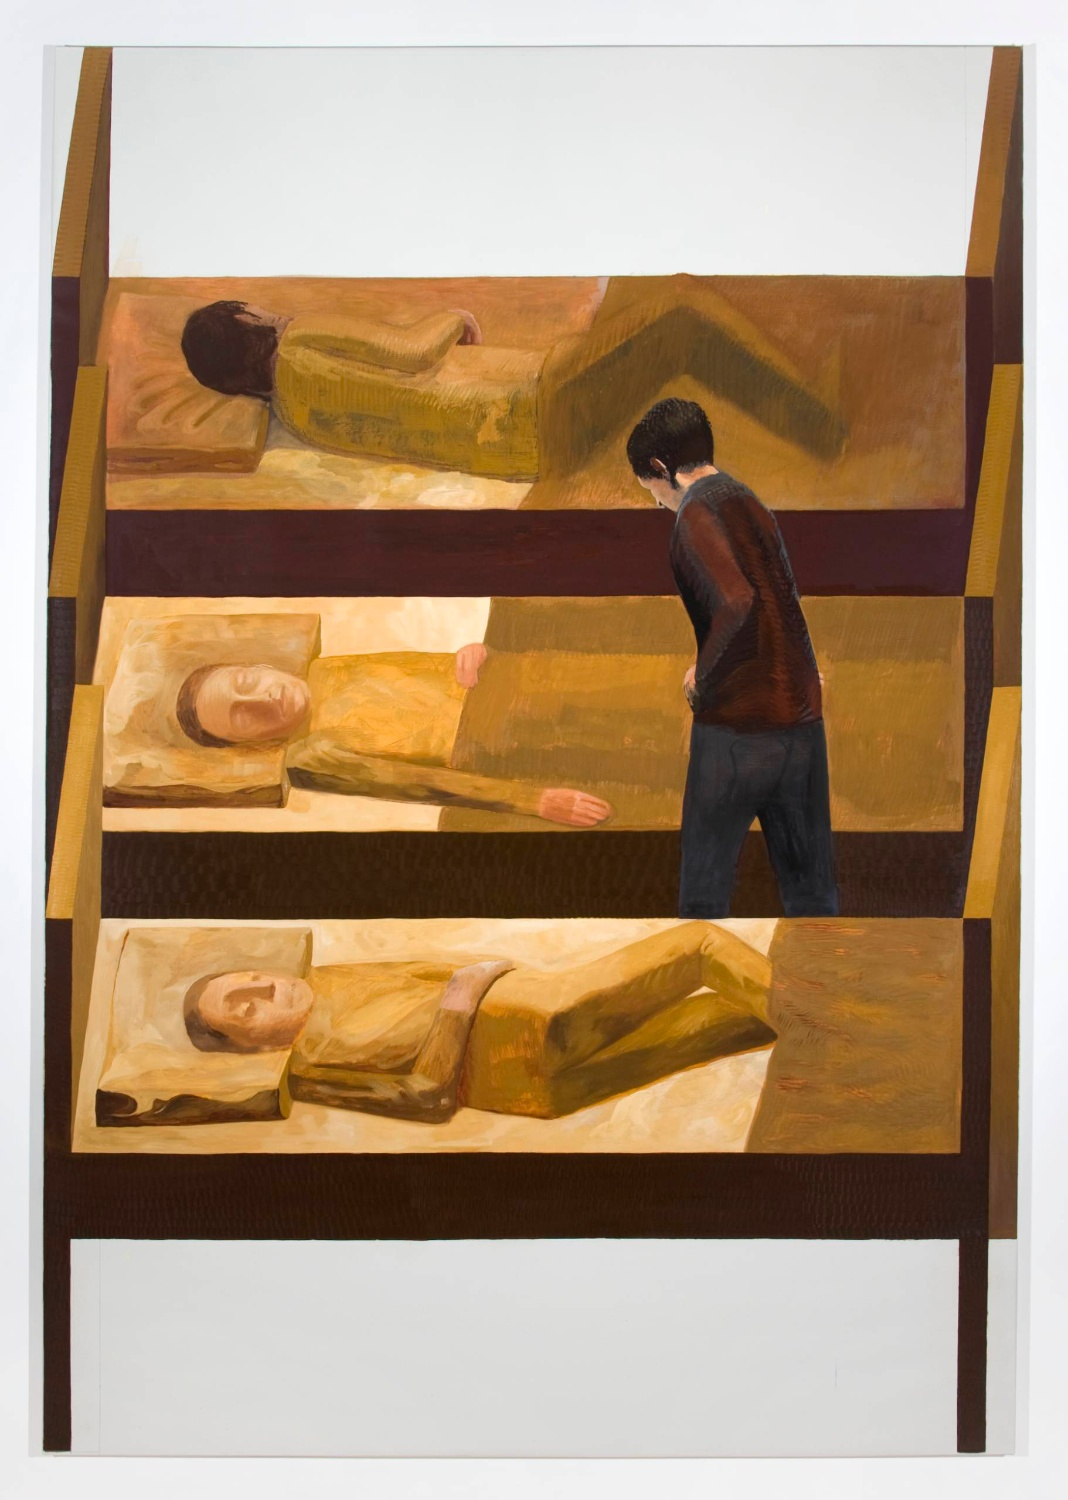 Jesse Chapman  The Beds  2008 Oil on linen 97h x 67w in